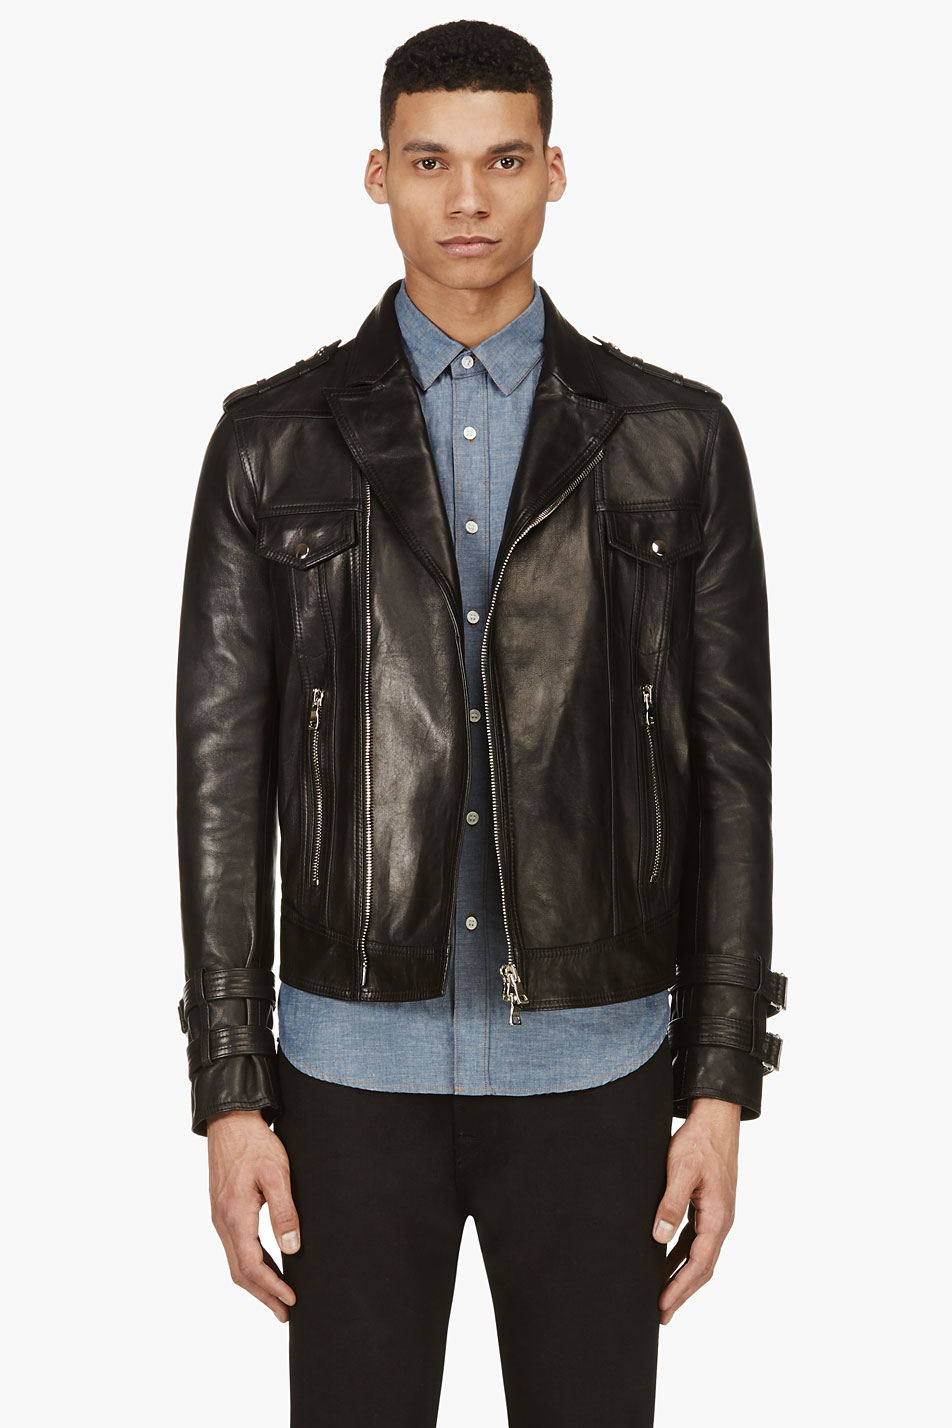 Spring Summer Leather Jackets